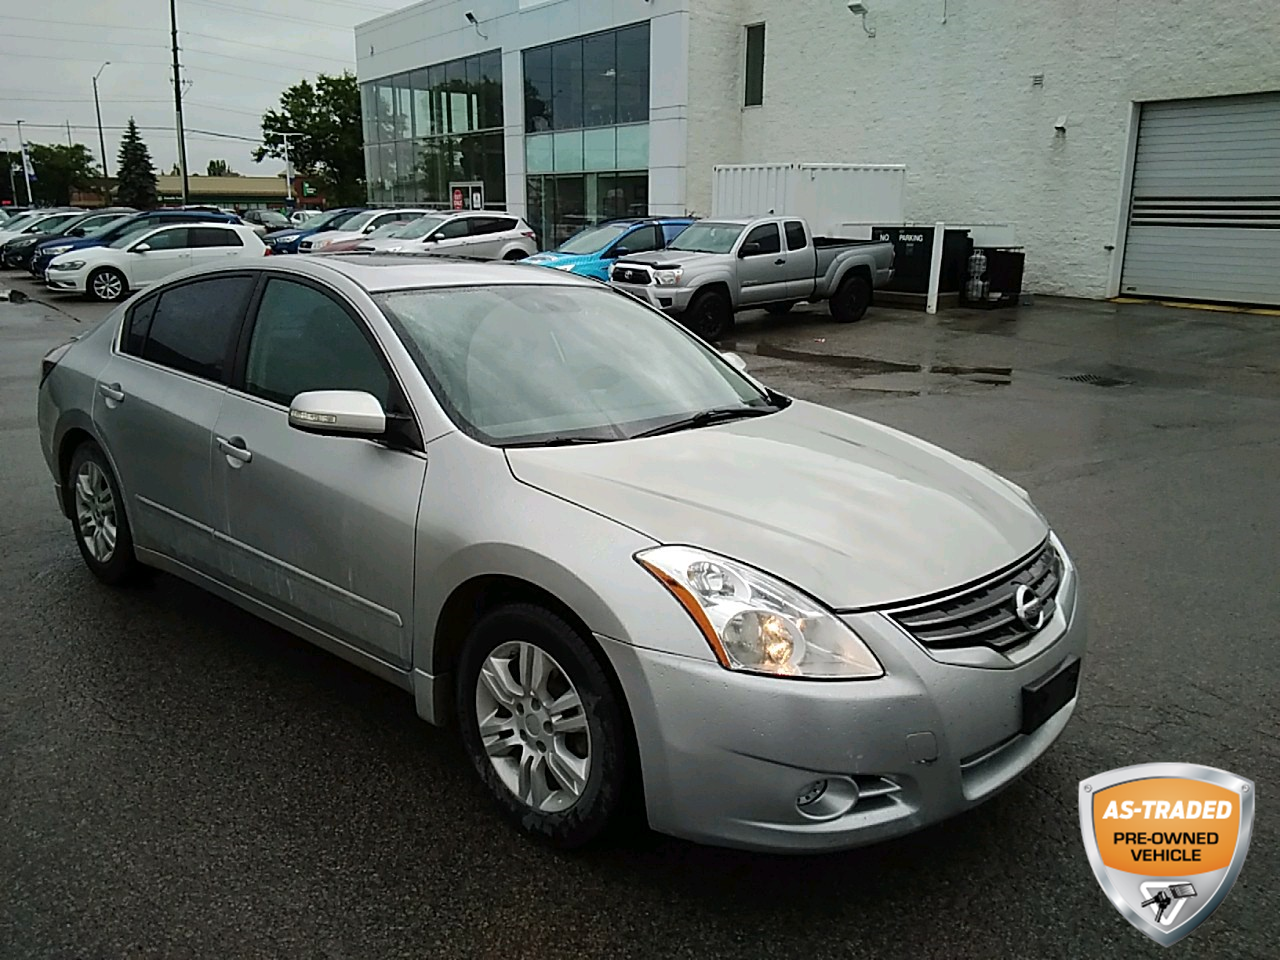 used 2010 Nissan Altima car, priced at $3,987